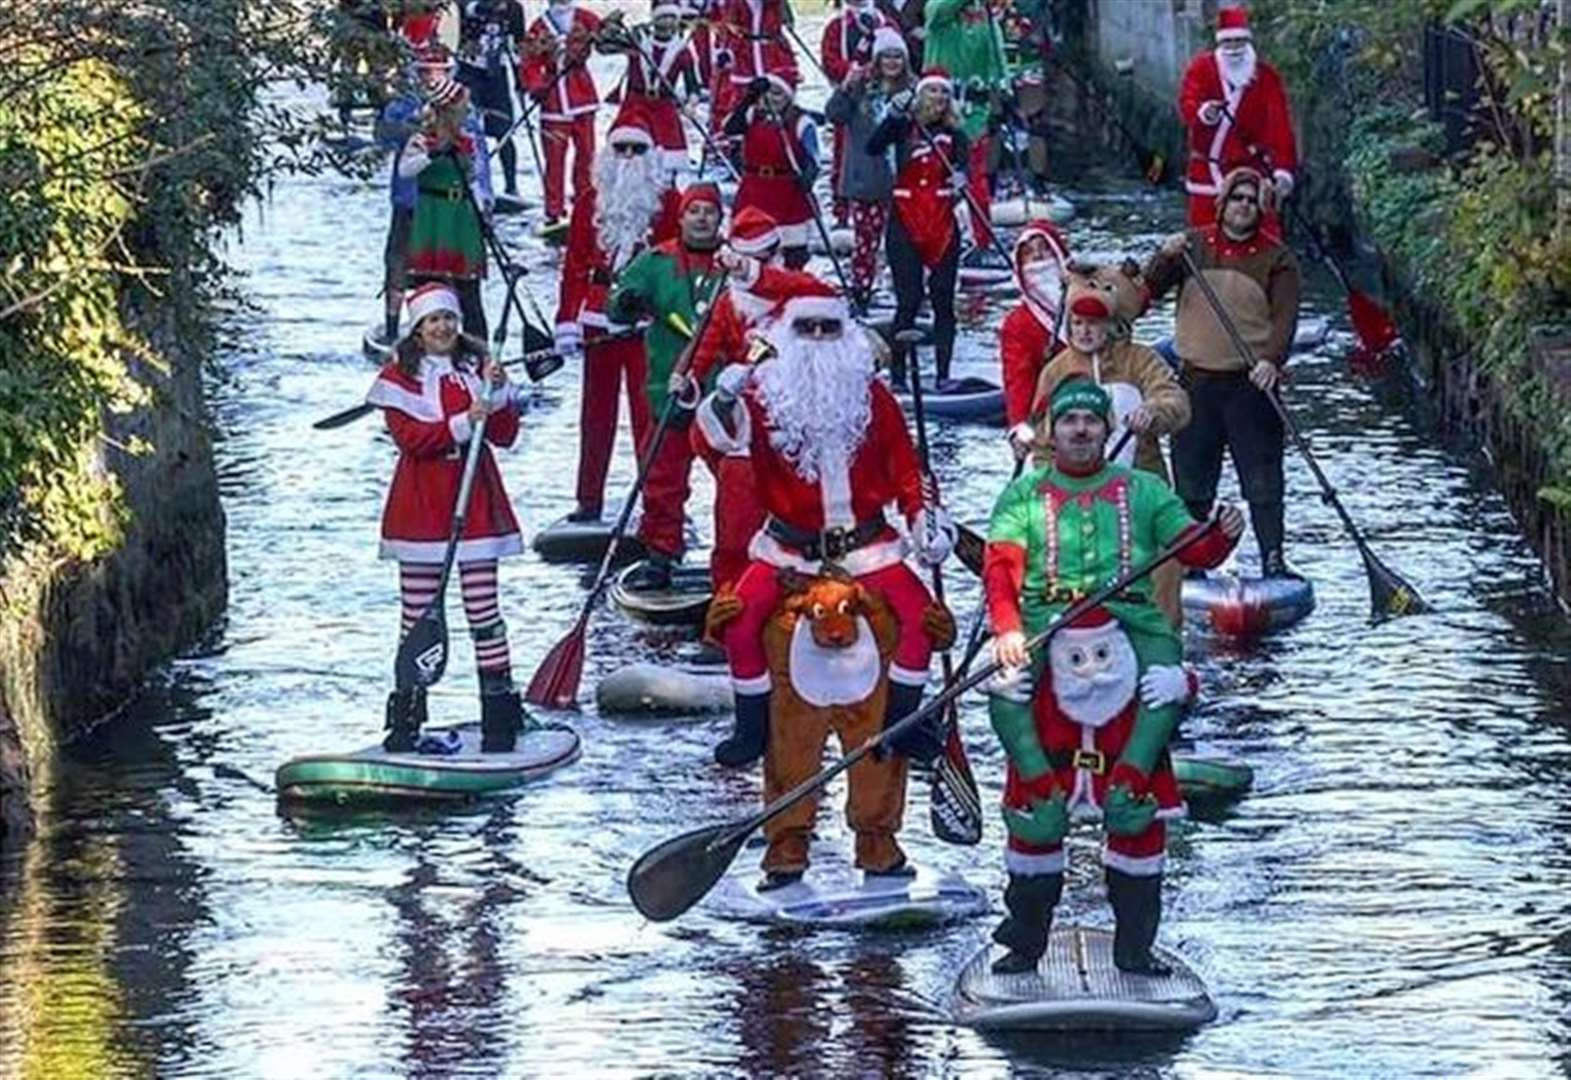 Santa paddle-board run on river